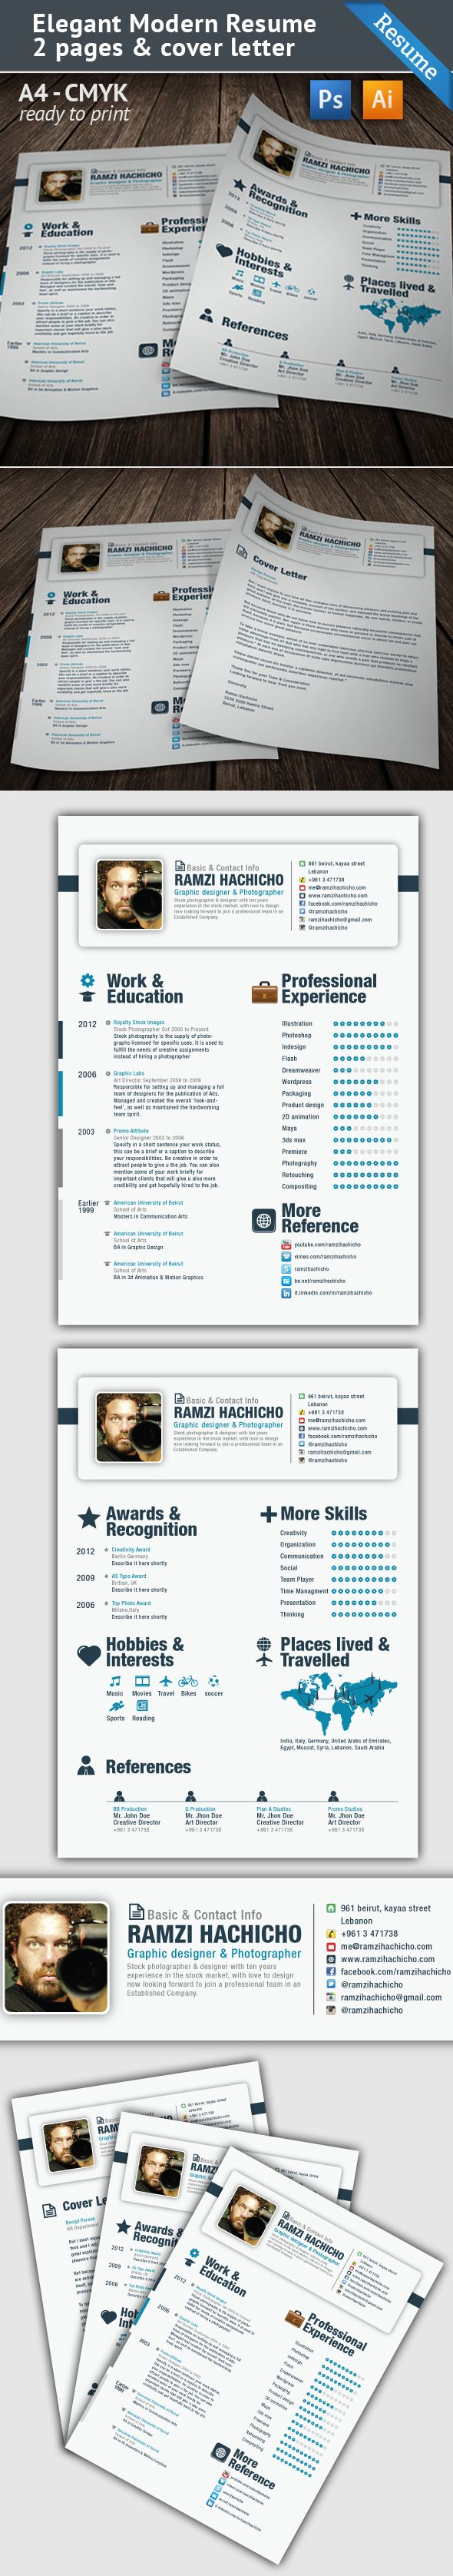 Creative Resume Design 69 best Creative Resume